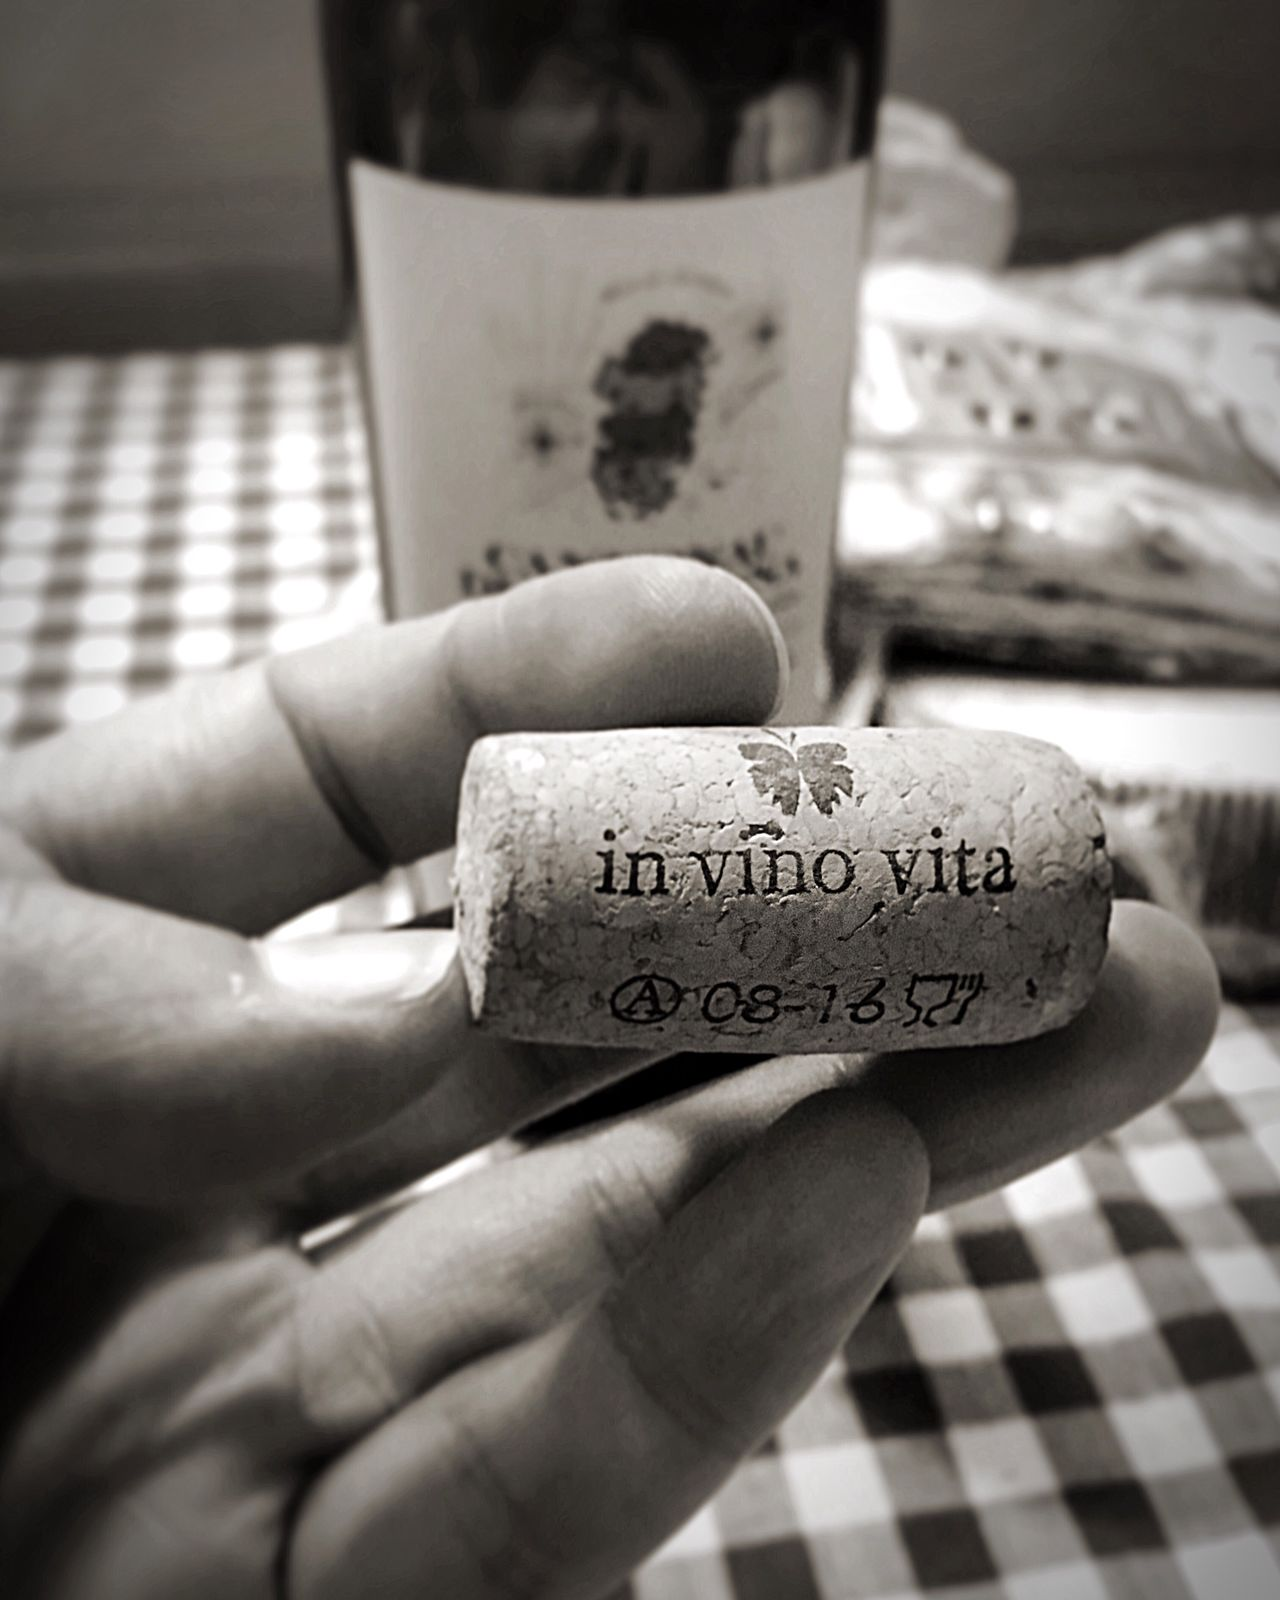 Invinovita Wine Food And Drink Human Finger Blackandwhite Dinner Time Drinking Bottle Person Joy Traveling Communication Table Text Relax Holiday